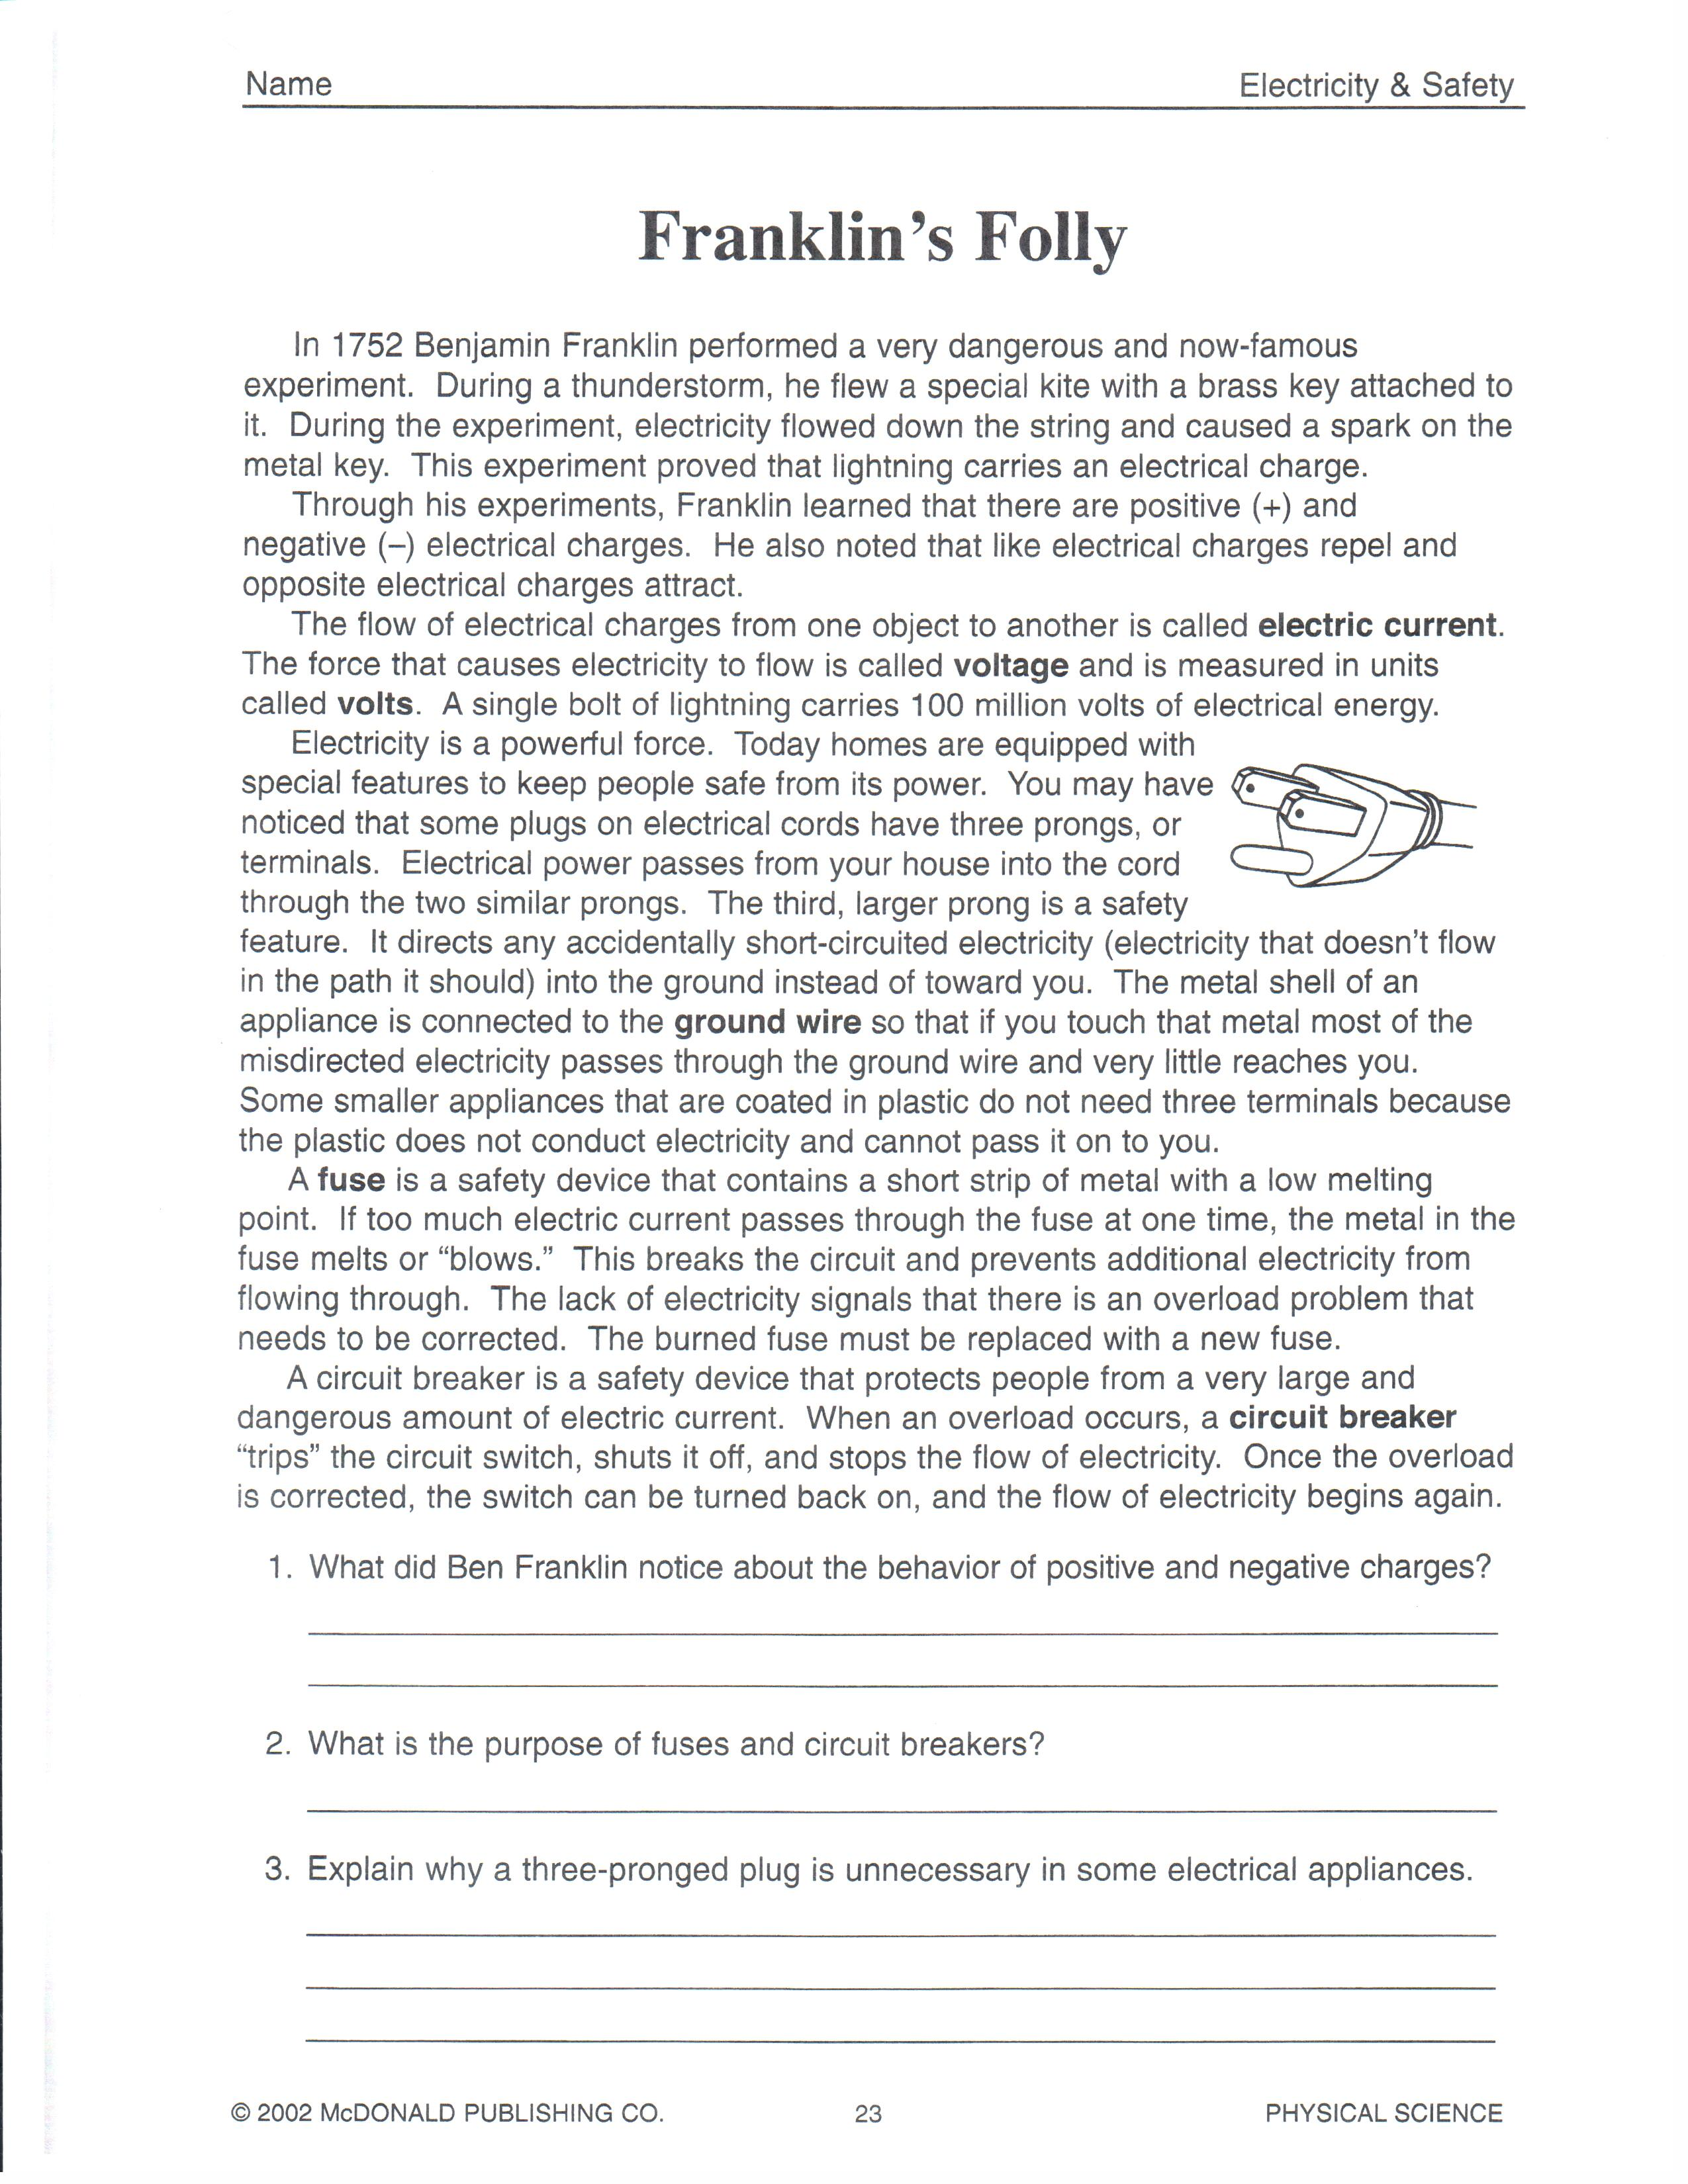 Worksheet Physical Science Worksheet Answers Grass Fedjp Worksheet Study Site